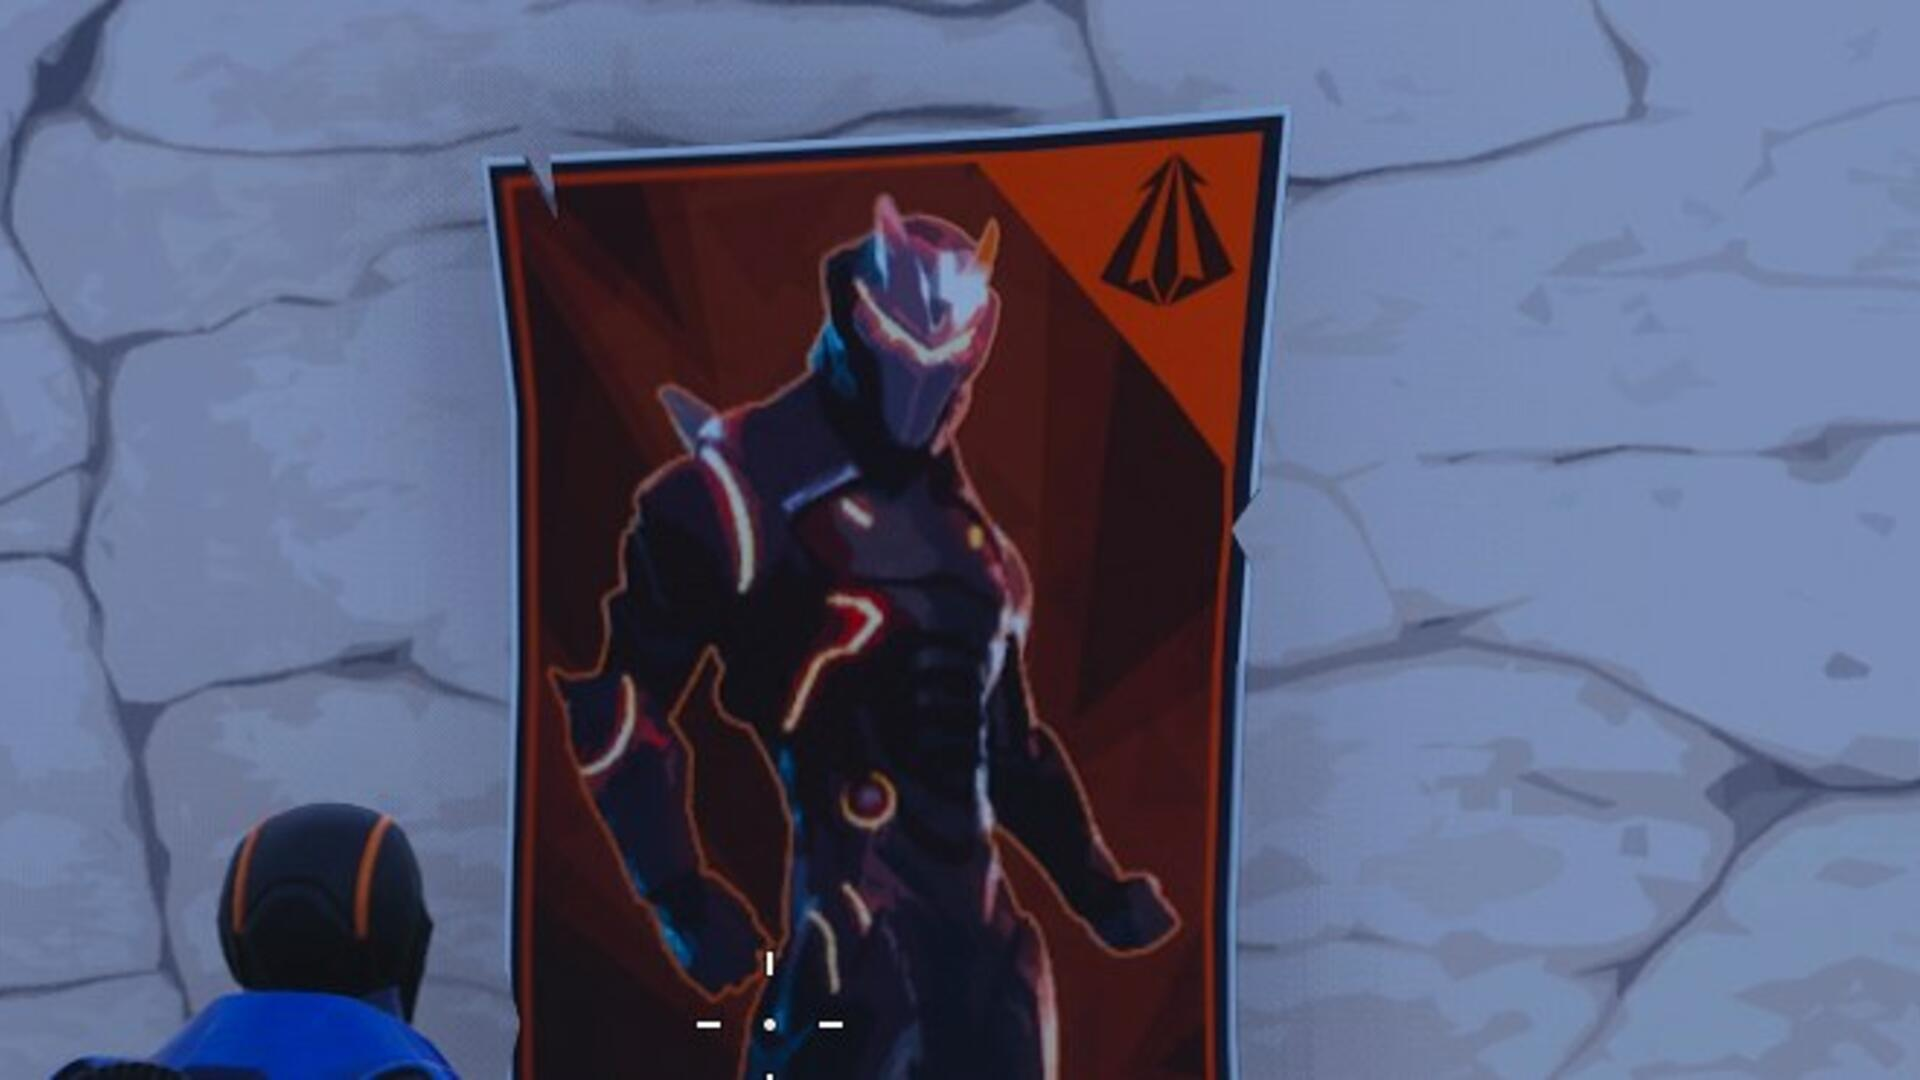 Fortnite Poster Locations - Spray over Carbide or Omega Posters